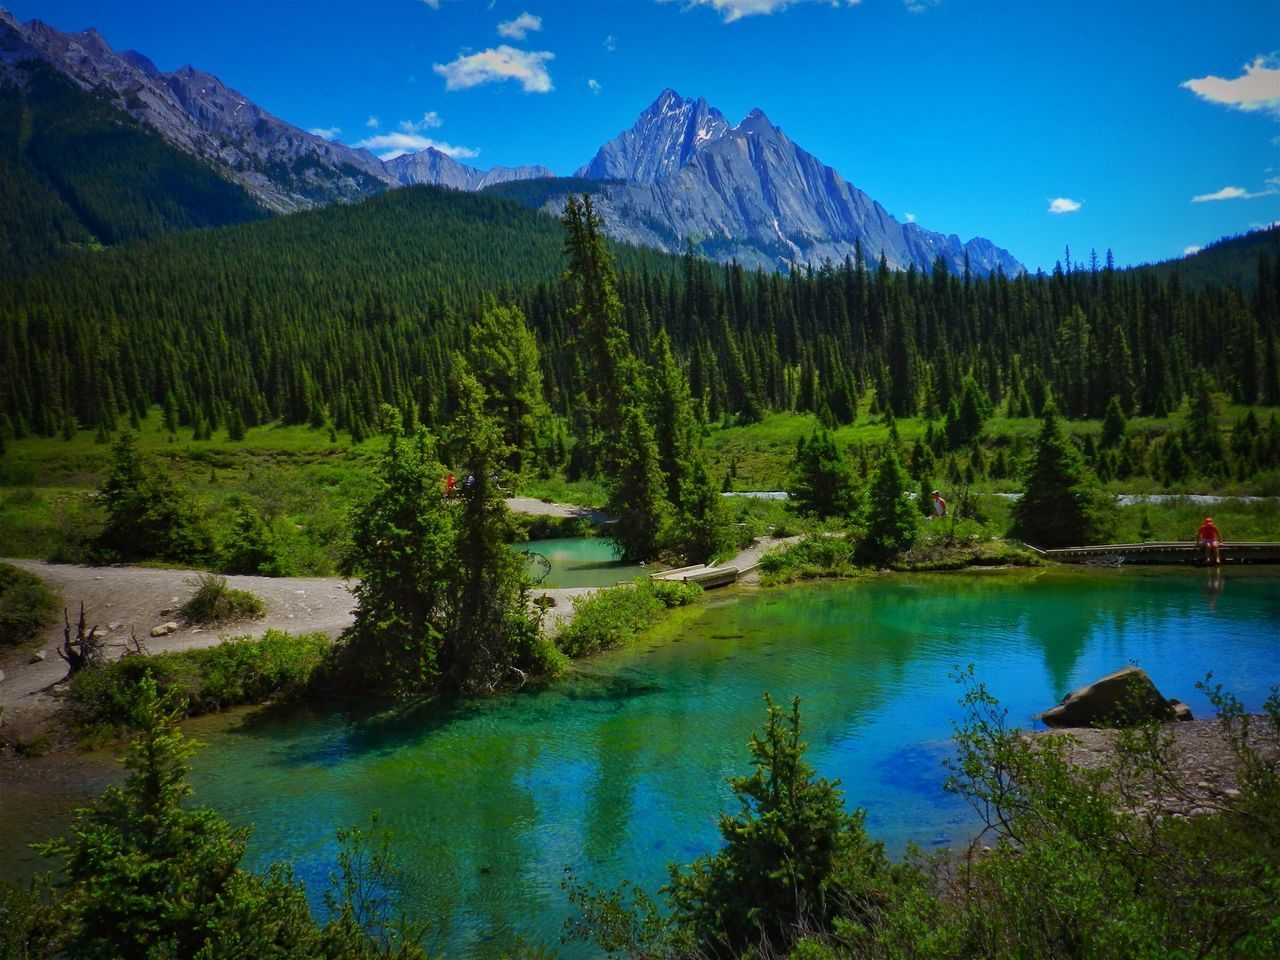 Alberta, Canada Beauty In Nature Blue Canada Day Forest Idyllic Lake Landscape Mountain Mountain Range Nature No People Outdoors Scenics Sky Tranquil Scene Tranquility Tree Water